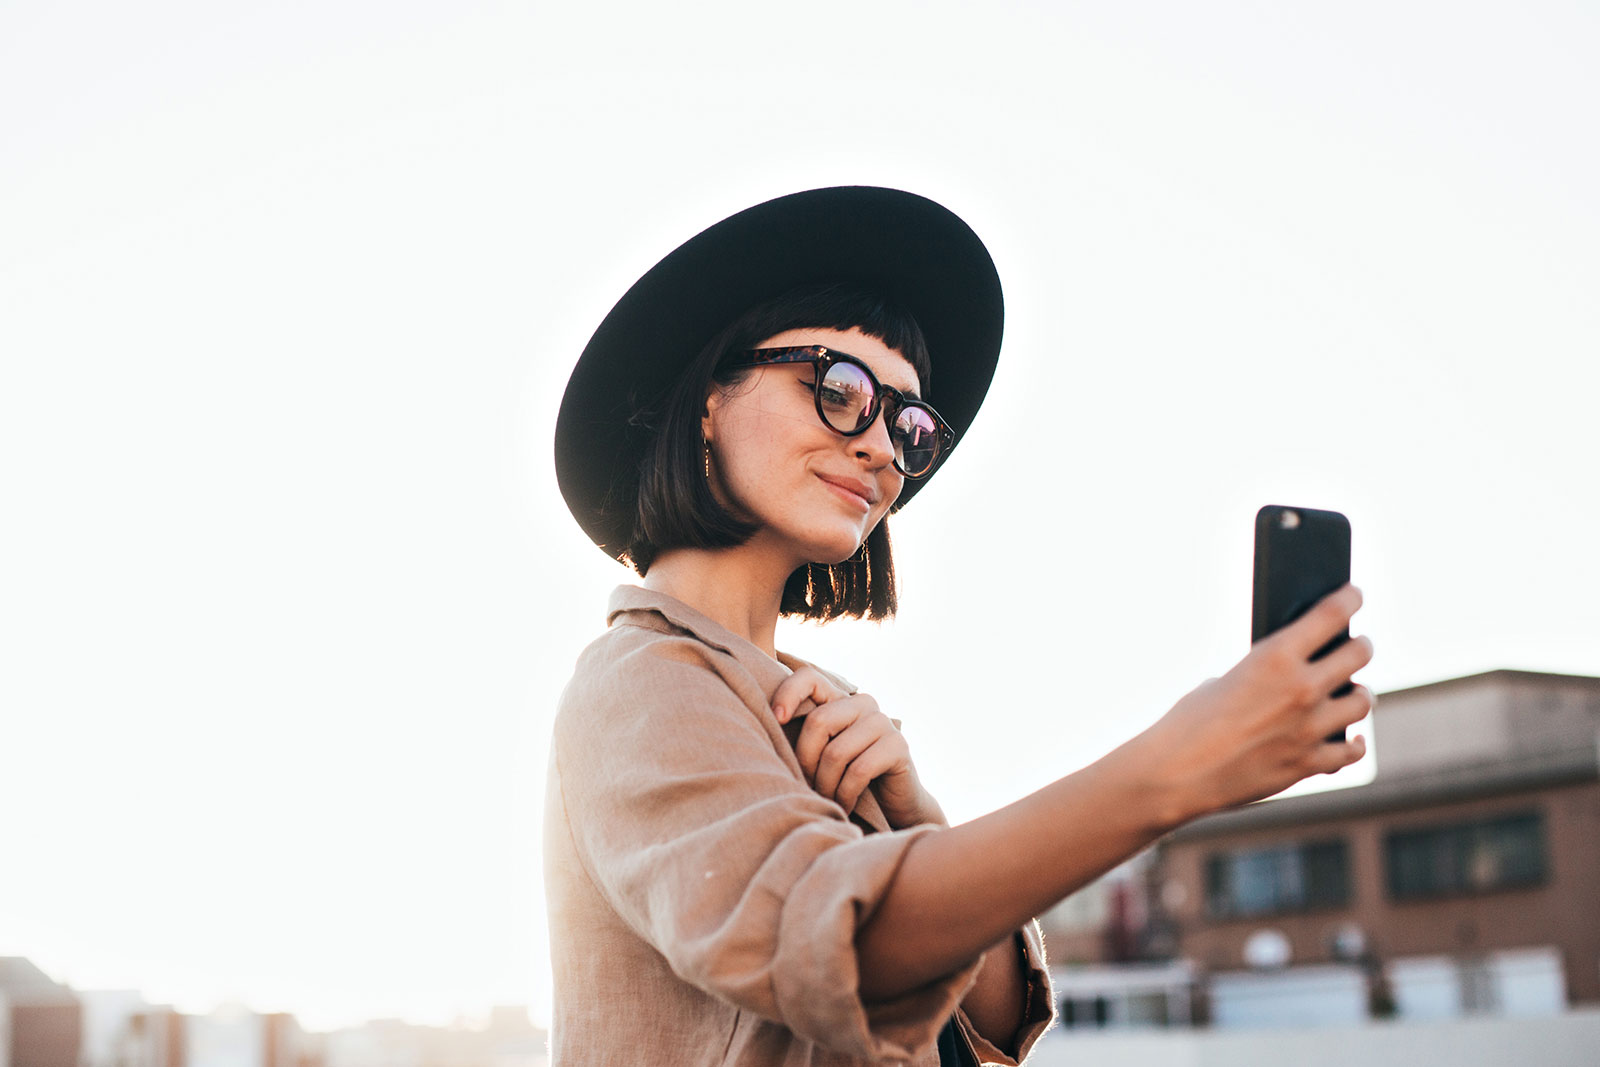 Instafamous: How to Build a Personal Brand on Instagram